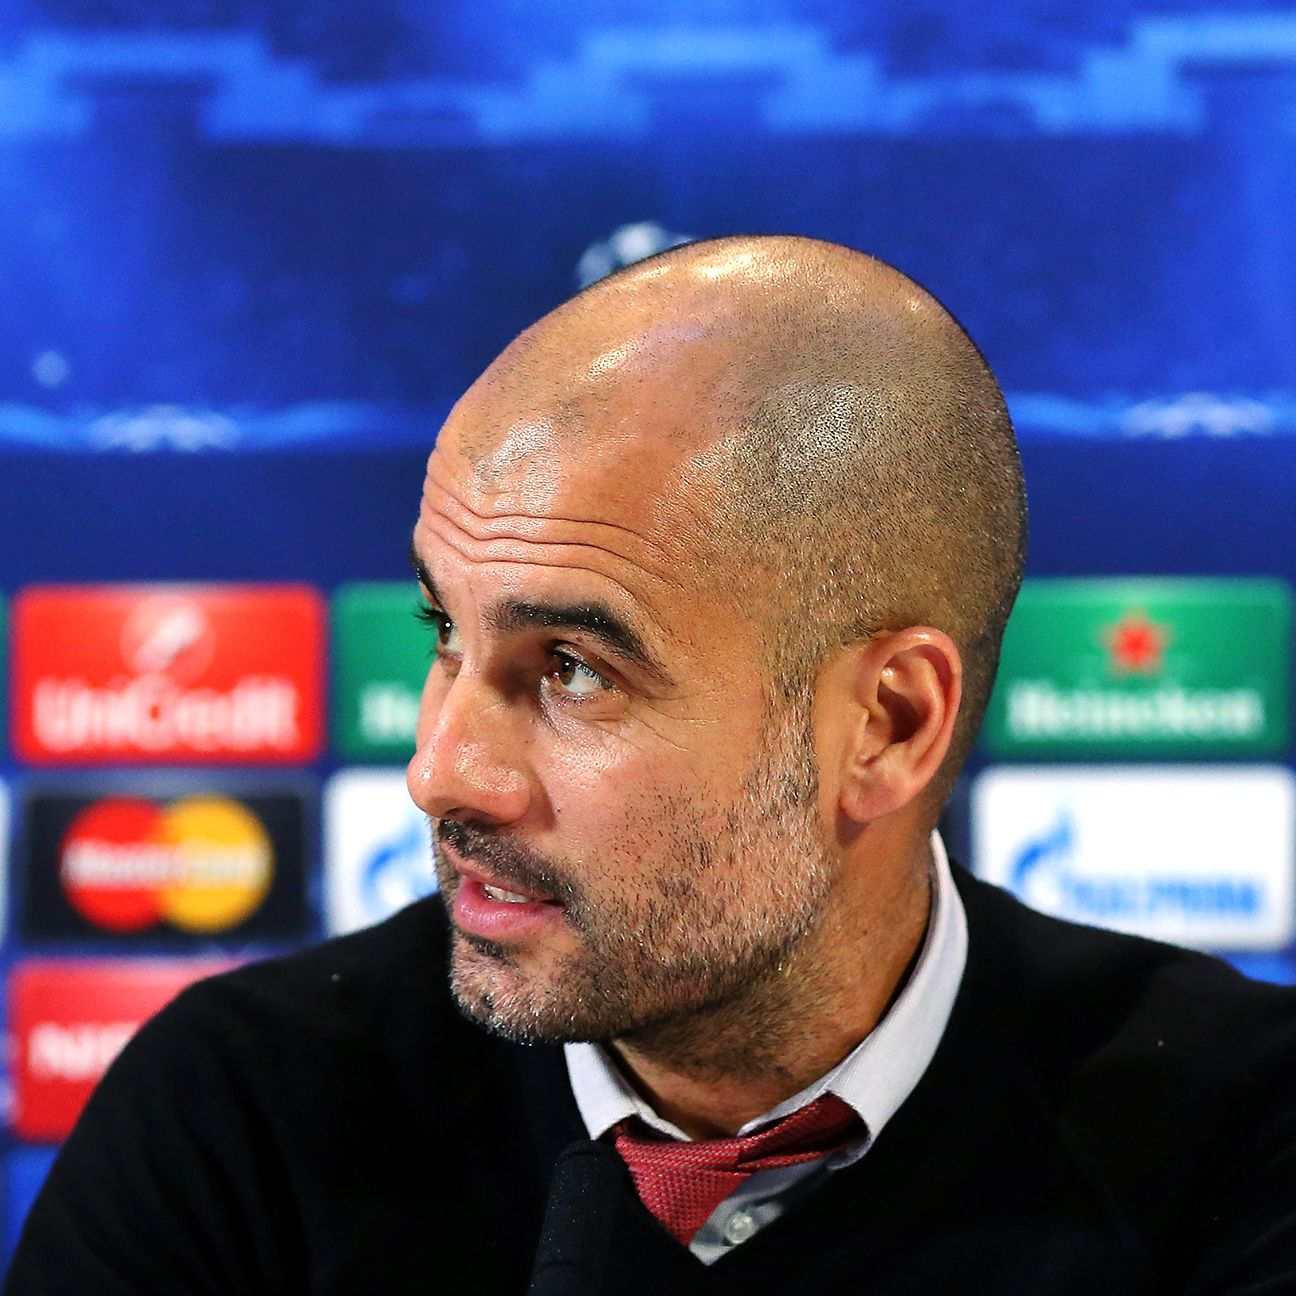 The spotlight always seems to find Bayern boss Pep Guardiola whenever he is in England.